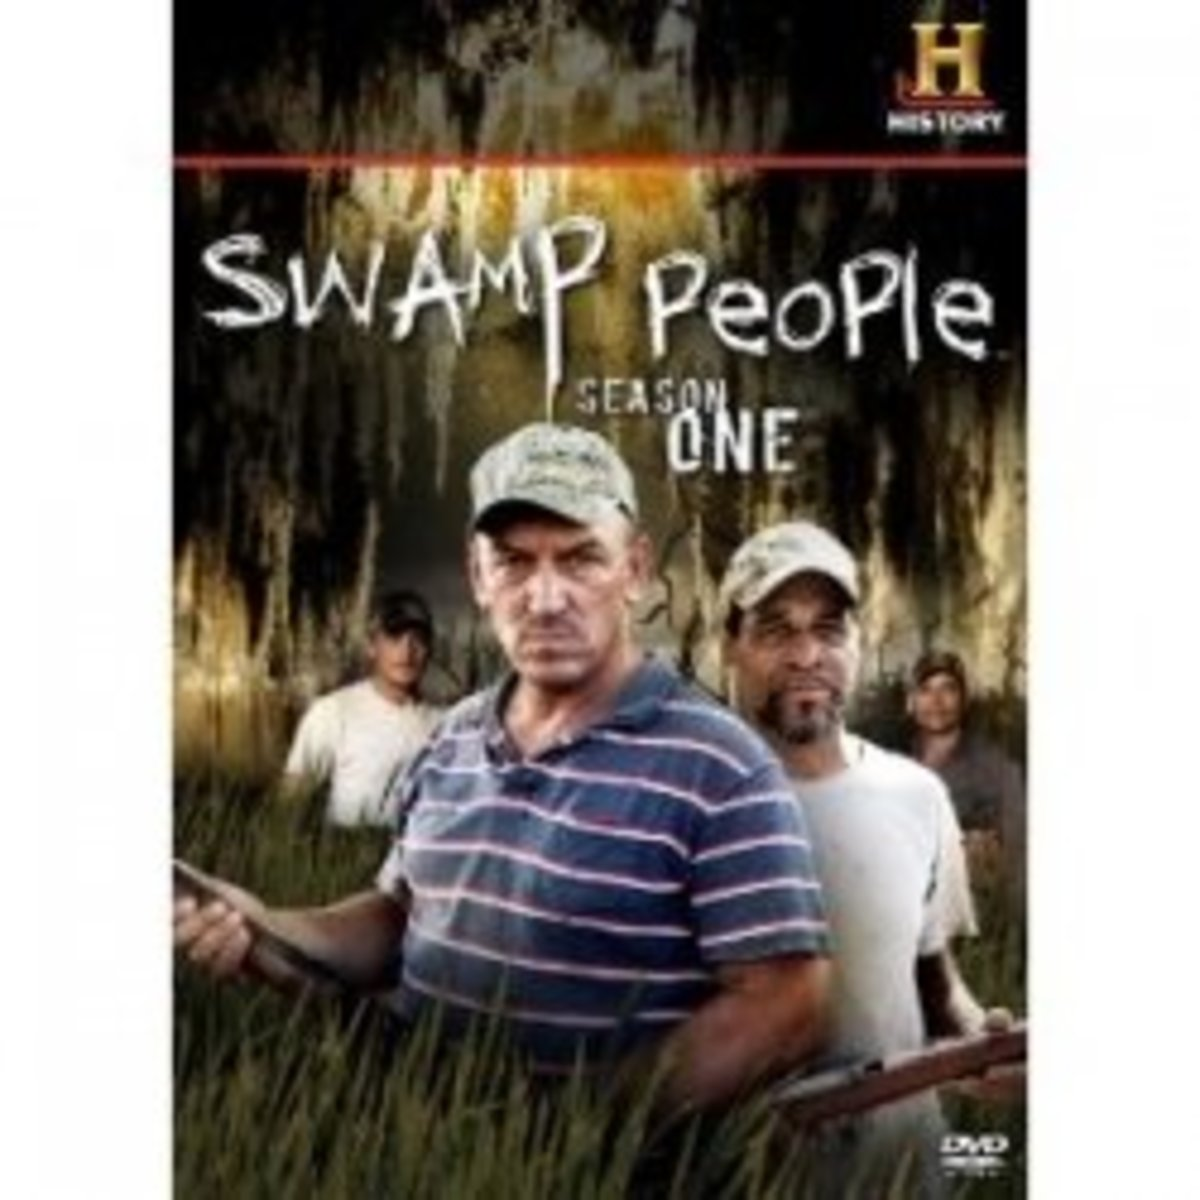 Troy Landry and the Swamp People crew.